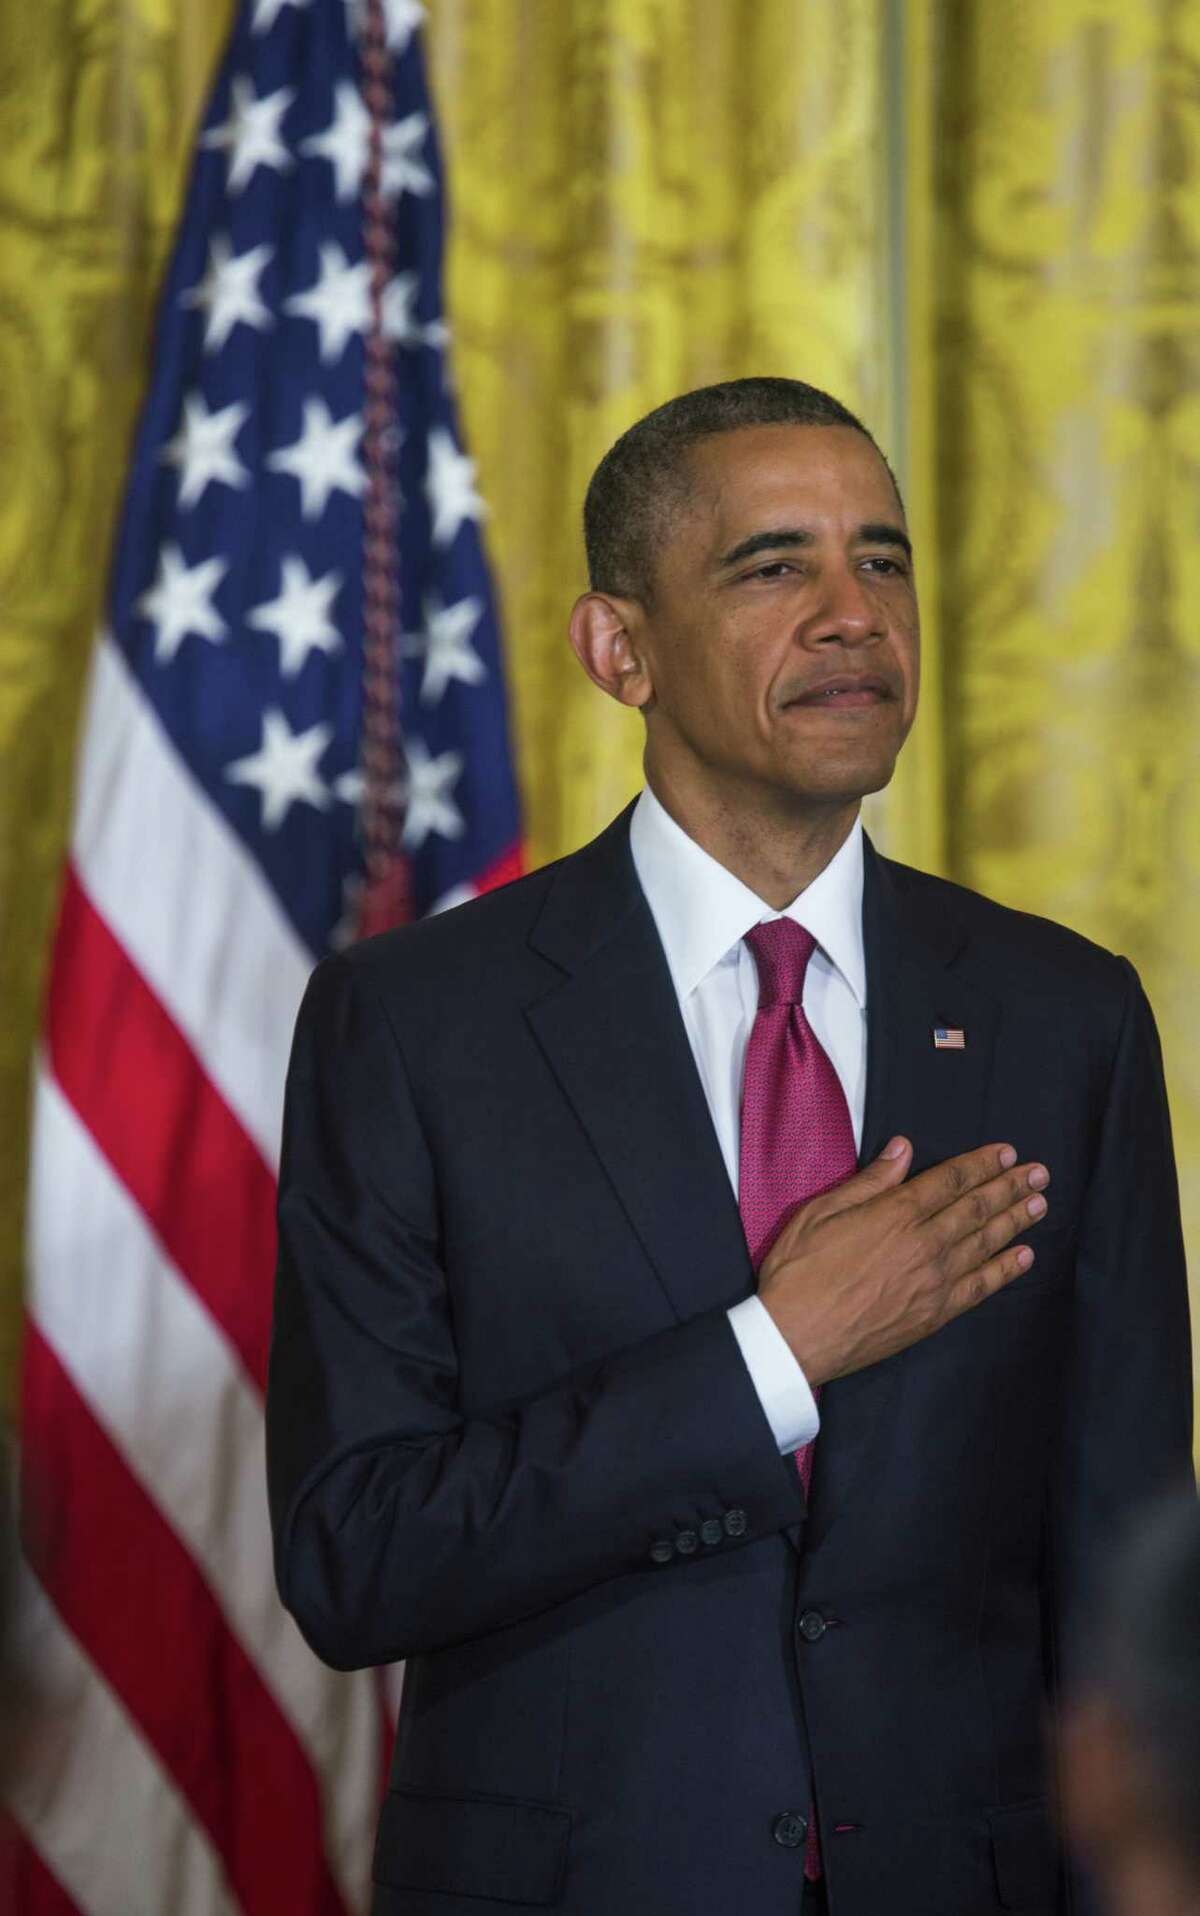 President Barack Obama is right to use executive orders to move ahead with immigration reform in areas where he can.